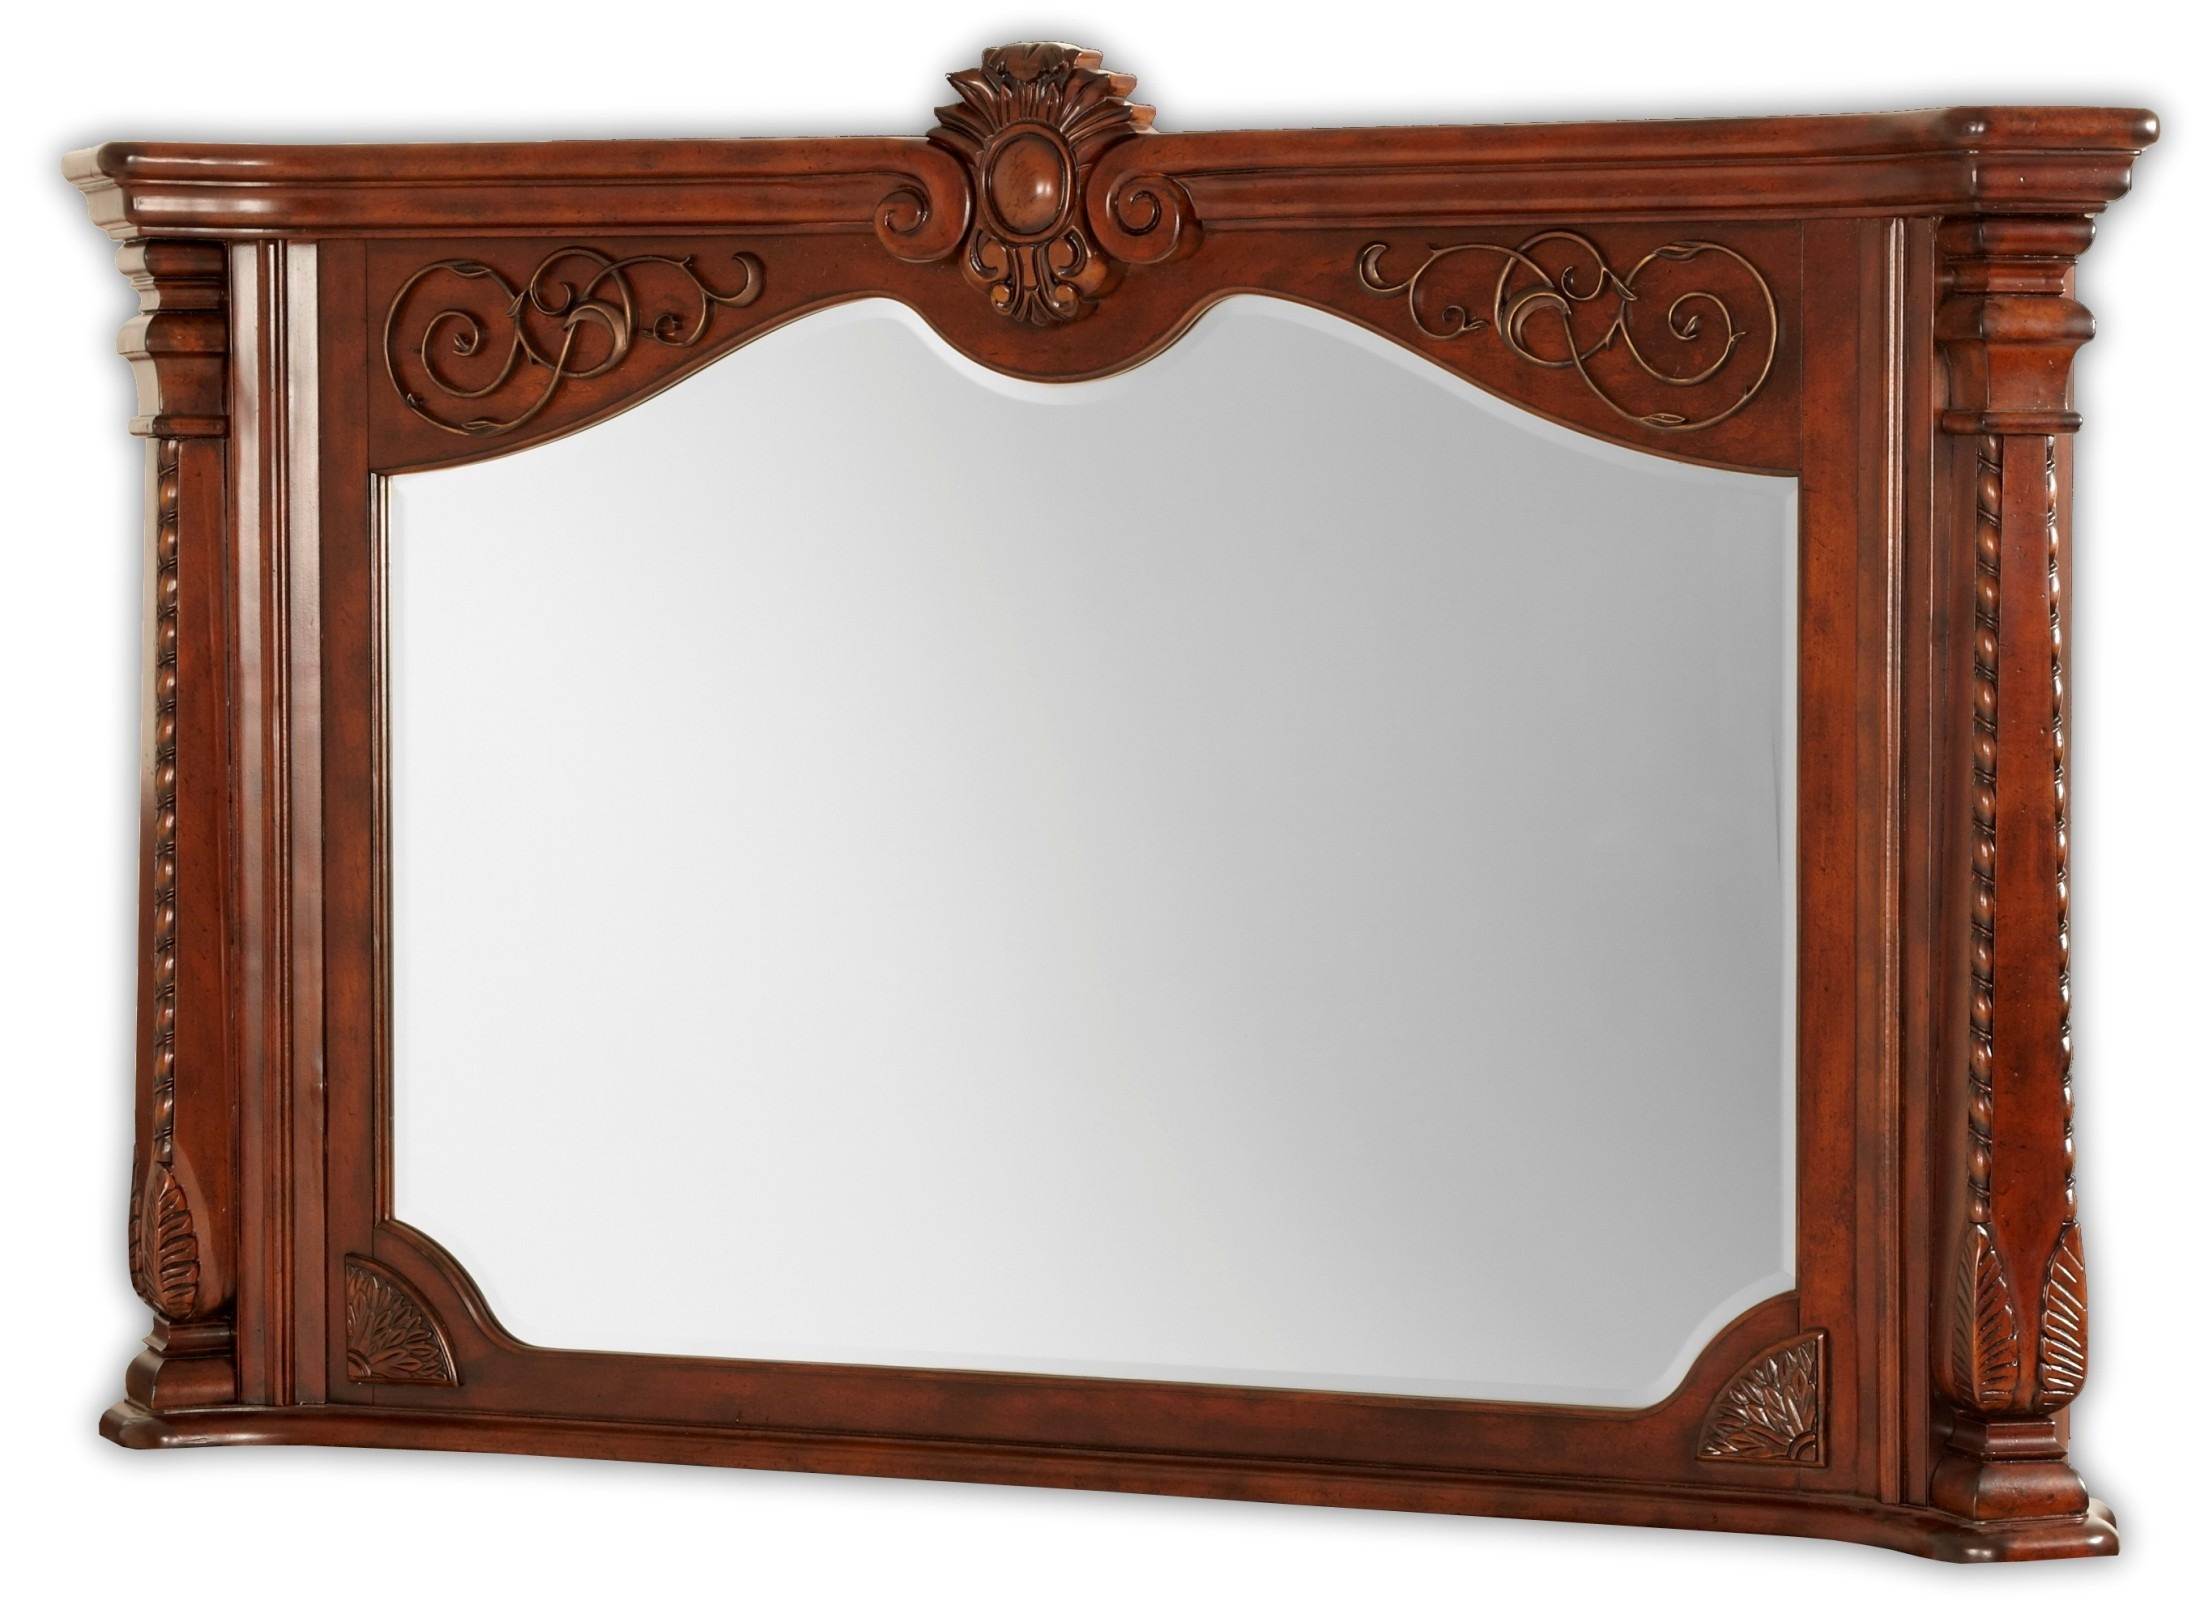 Windsor Court Fireplace Mirror from Aico 54